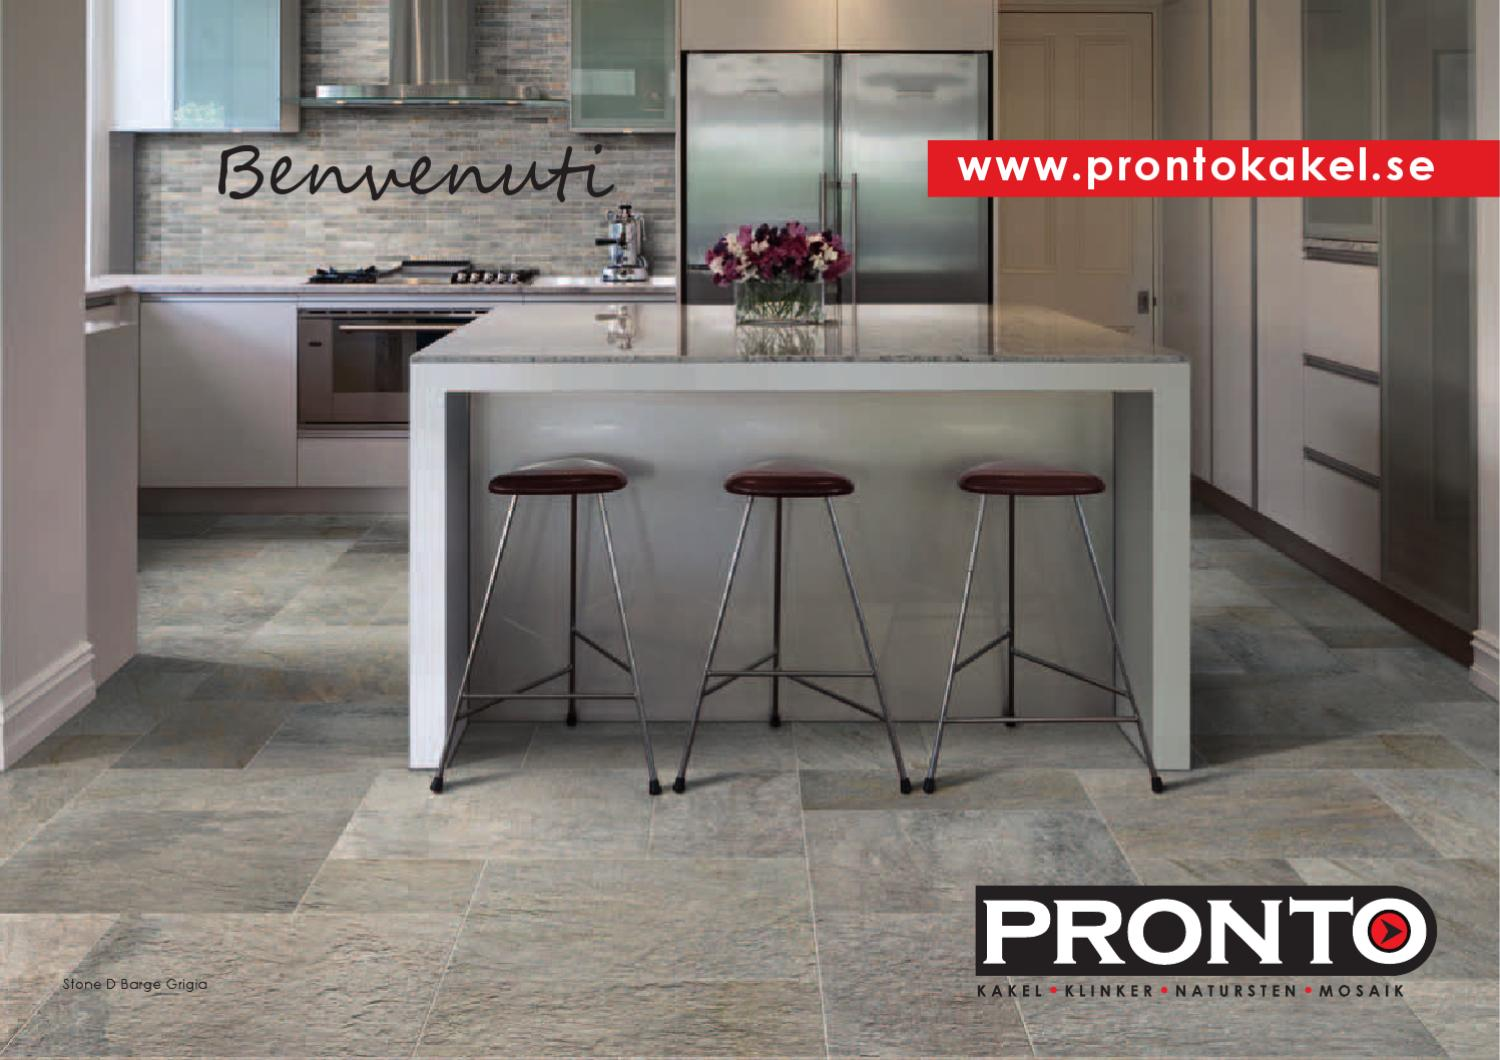 ProntoKakel Katalog by Pronto Kakel® - issuu